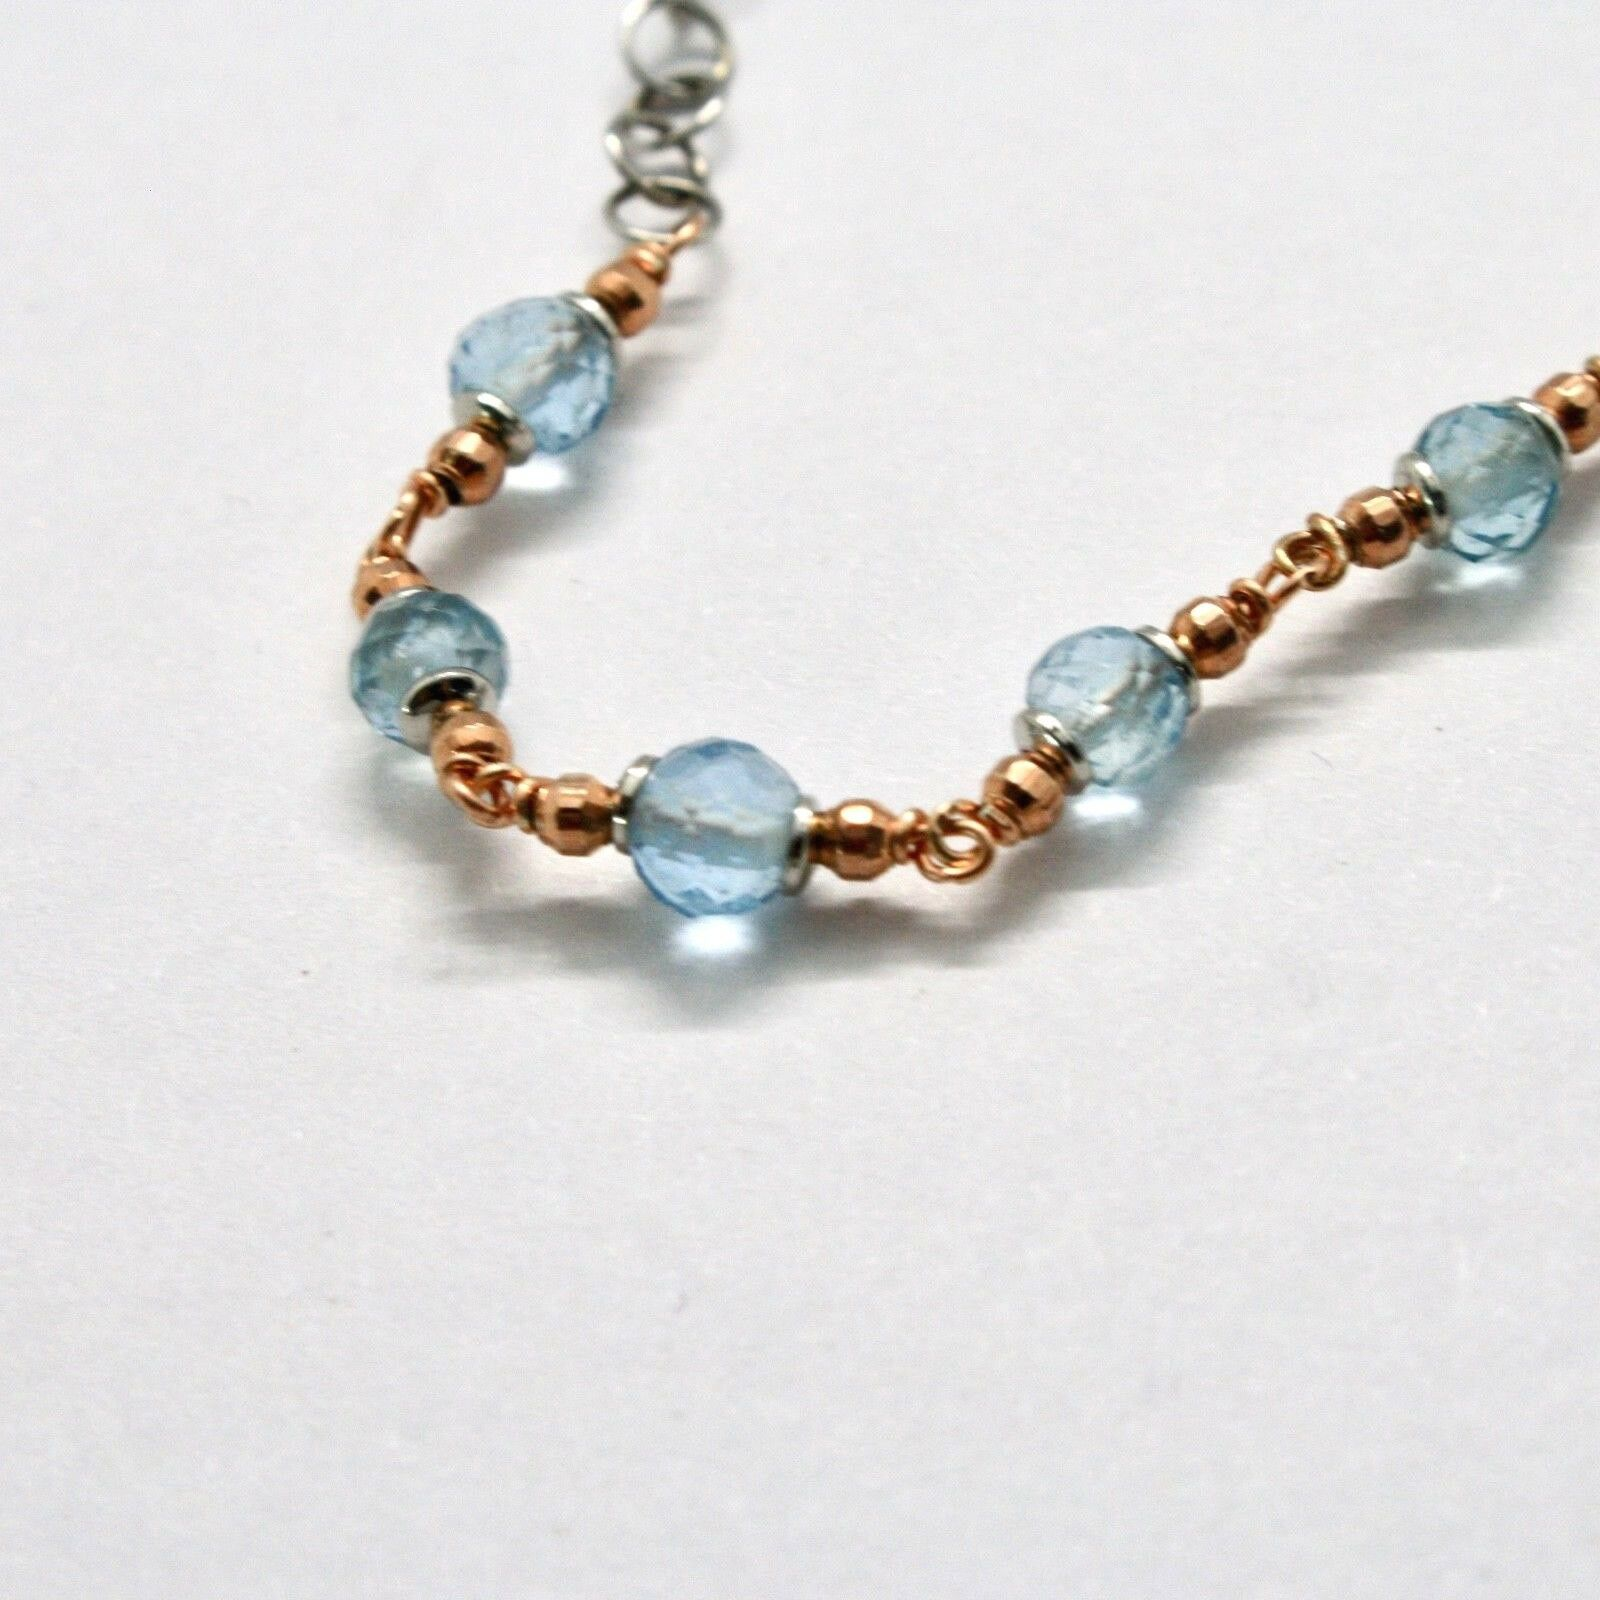 SILVER 925 BRACELET LAMINATED GOLD PINK WITH AQUAMARINE AND ZIRCONIA CUBIC